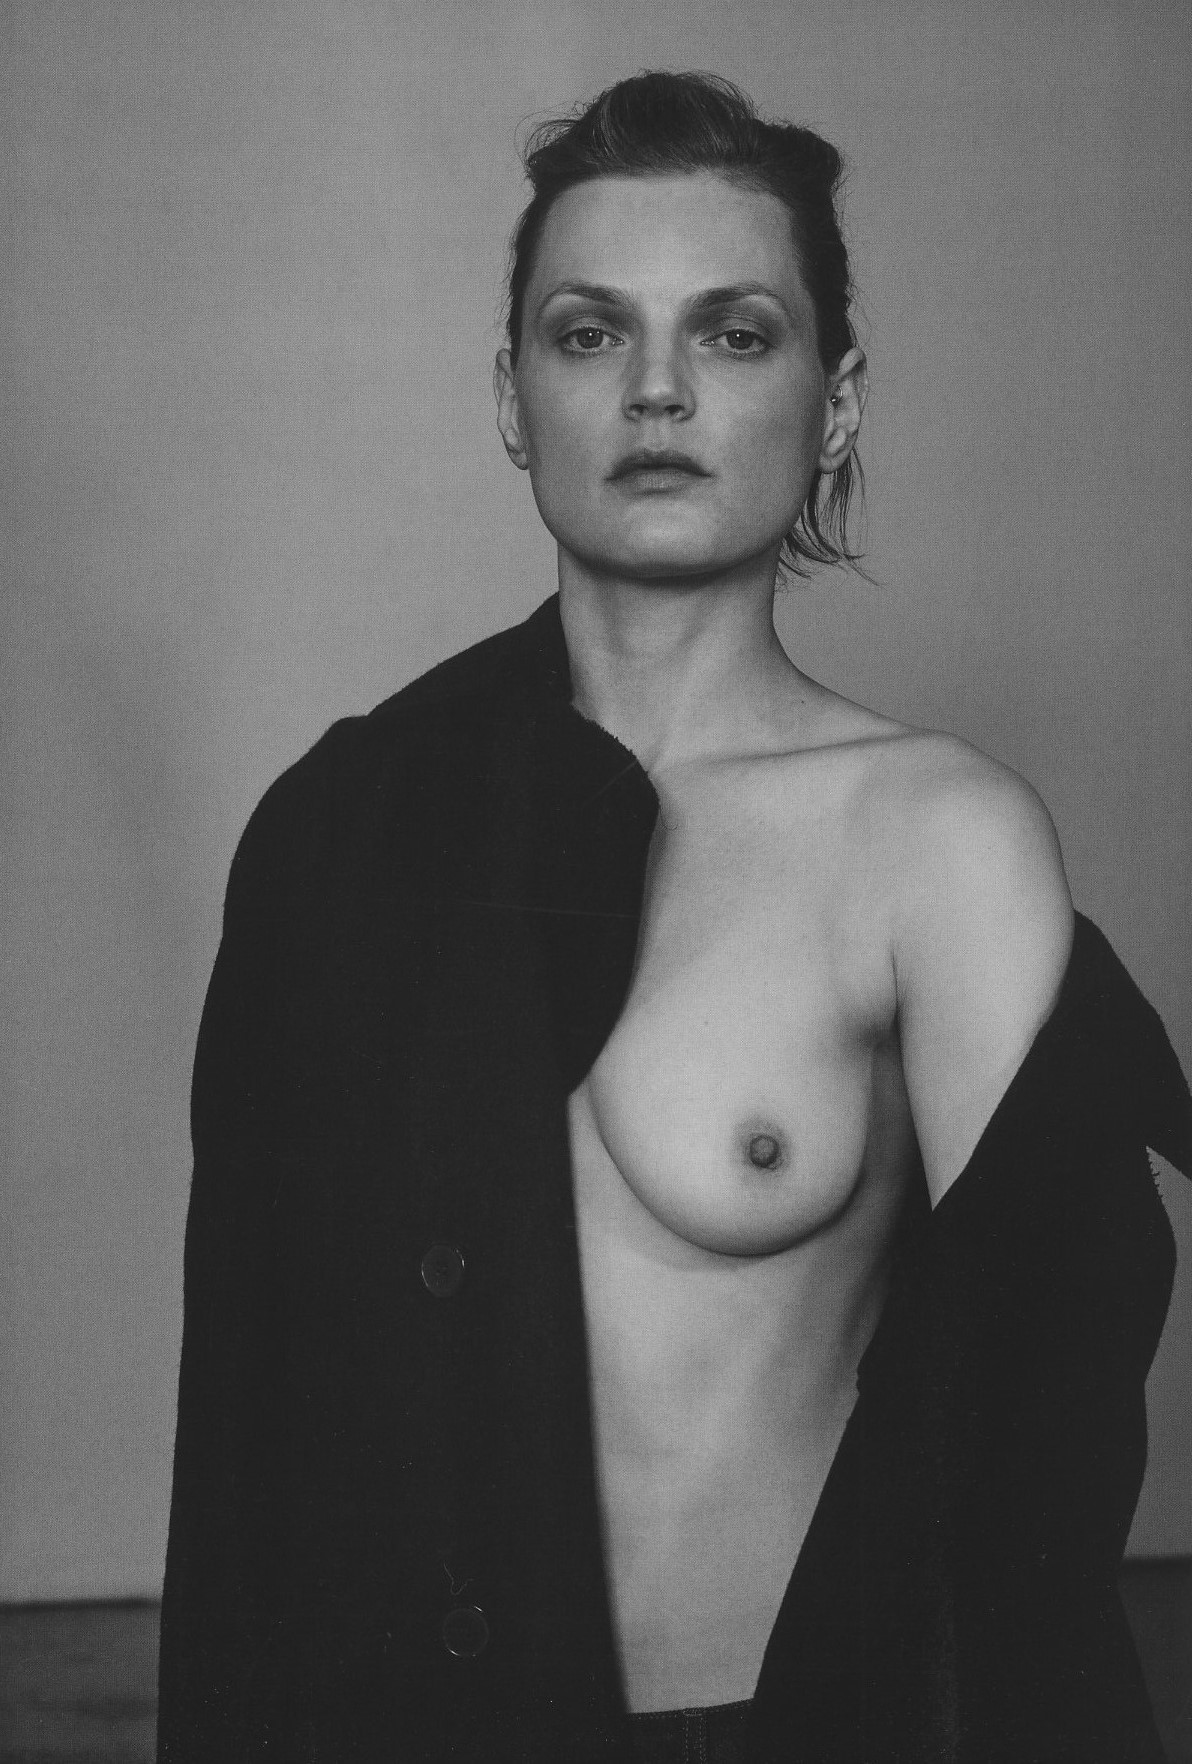 Guinevere_van_Seenus-Collier_Schorr-AnOther_Magazine.jpg